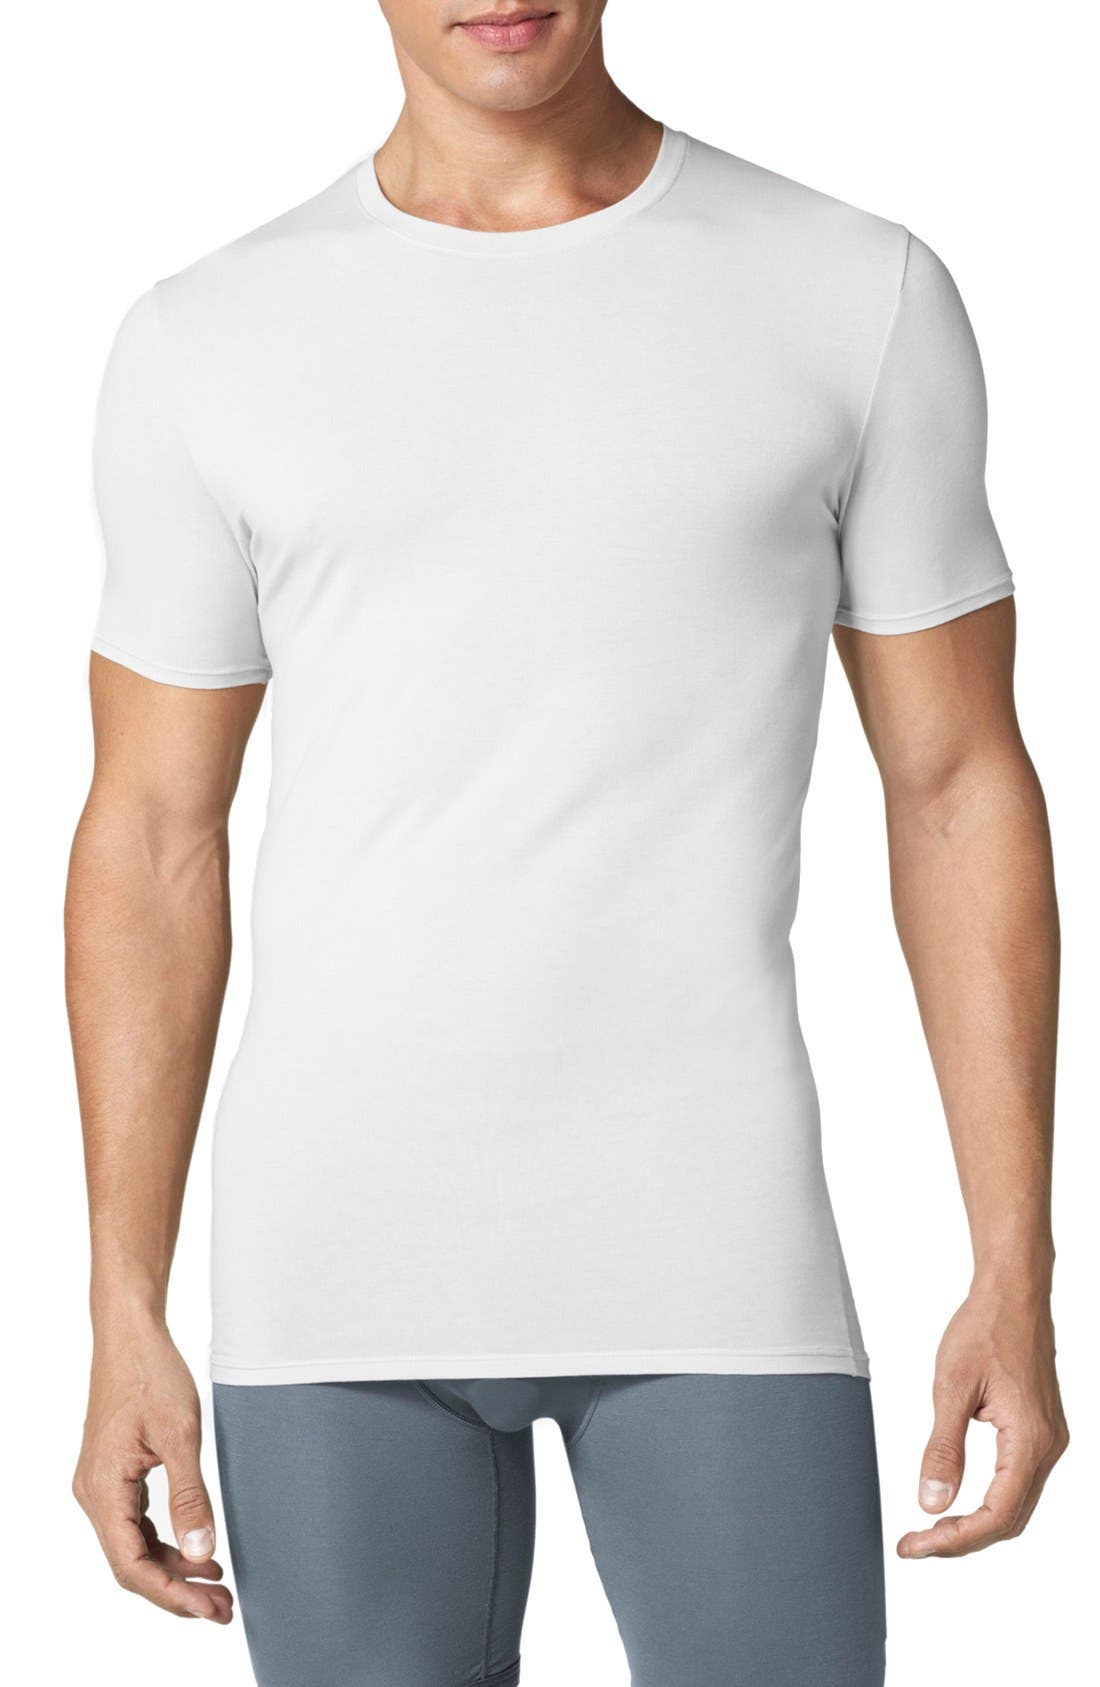 Second Skin Crewneck Undershirt,                             Main thumbnail 1, color,                             WHITE